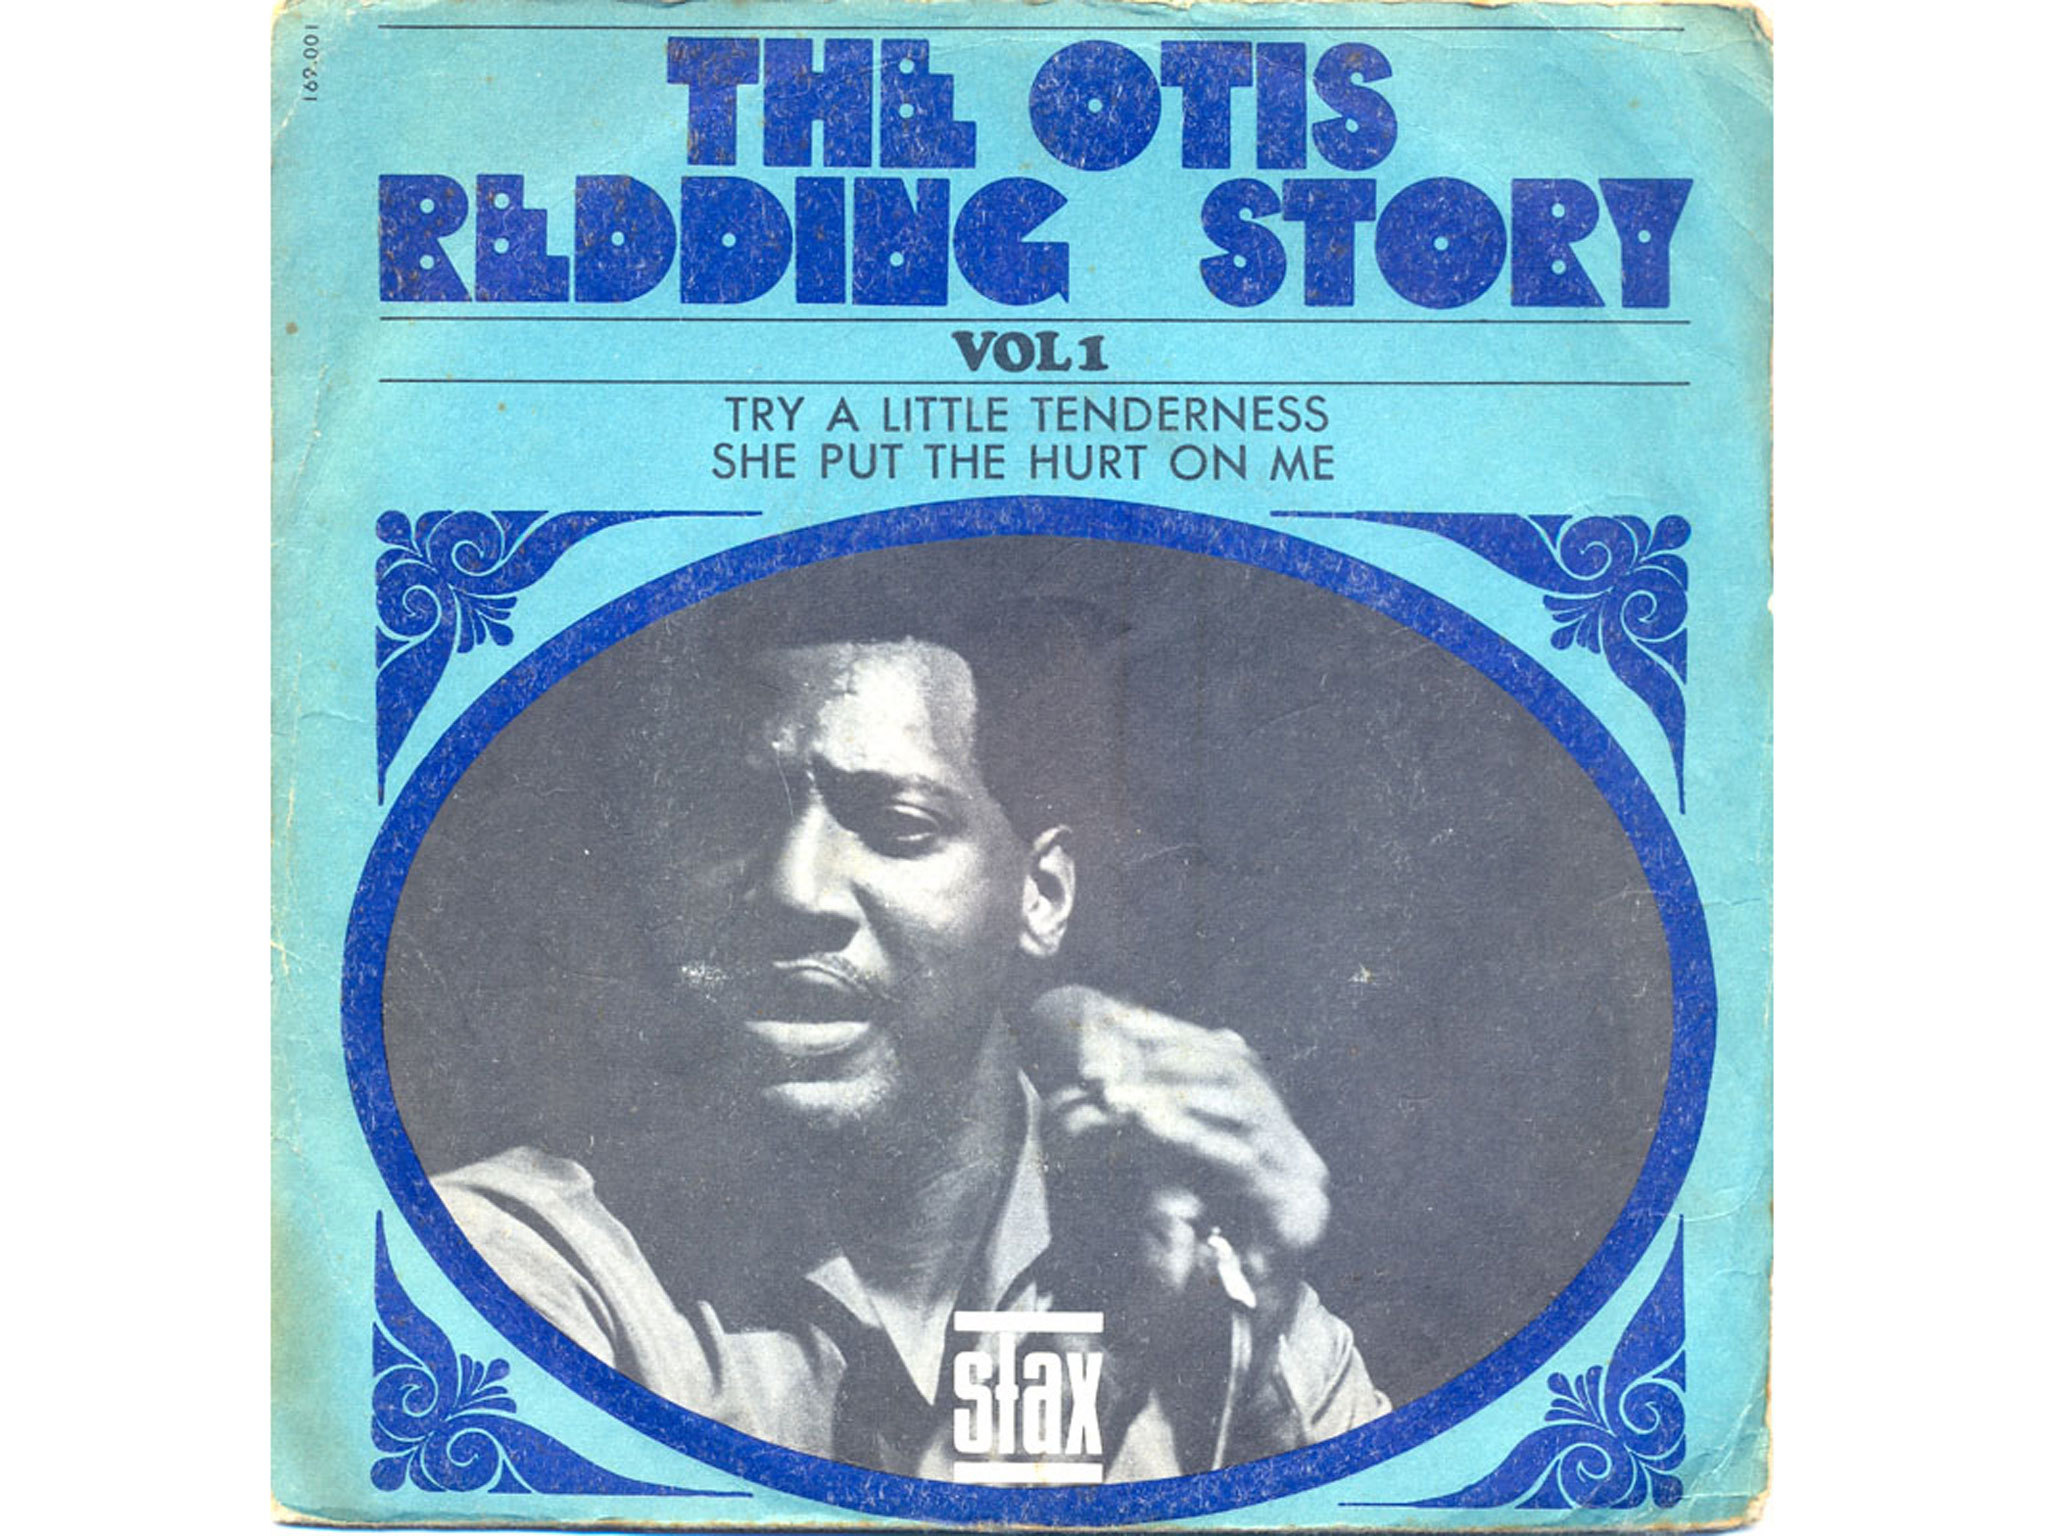 Otis Redding, try a little tenderness, best soul songs